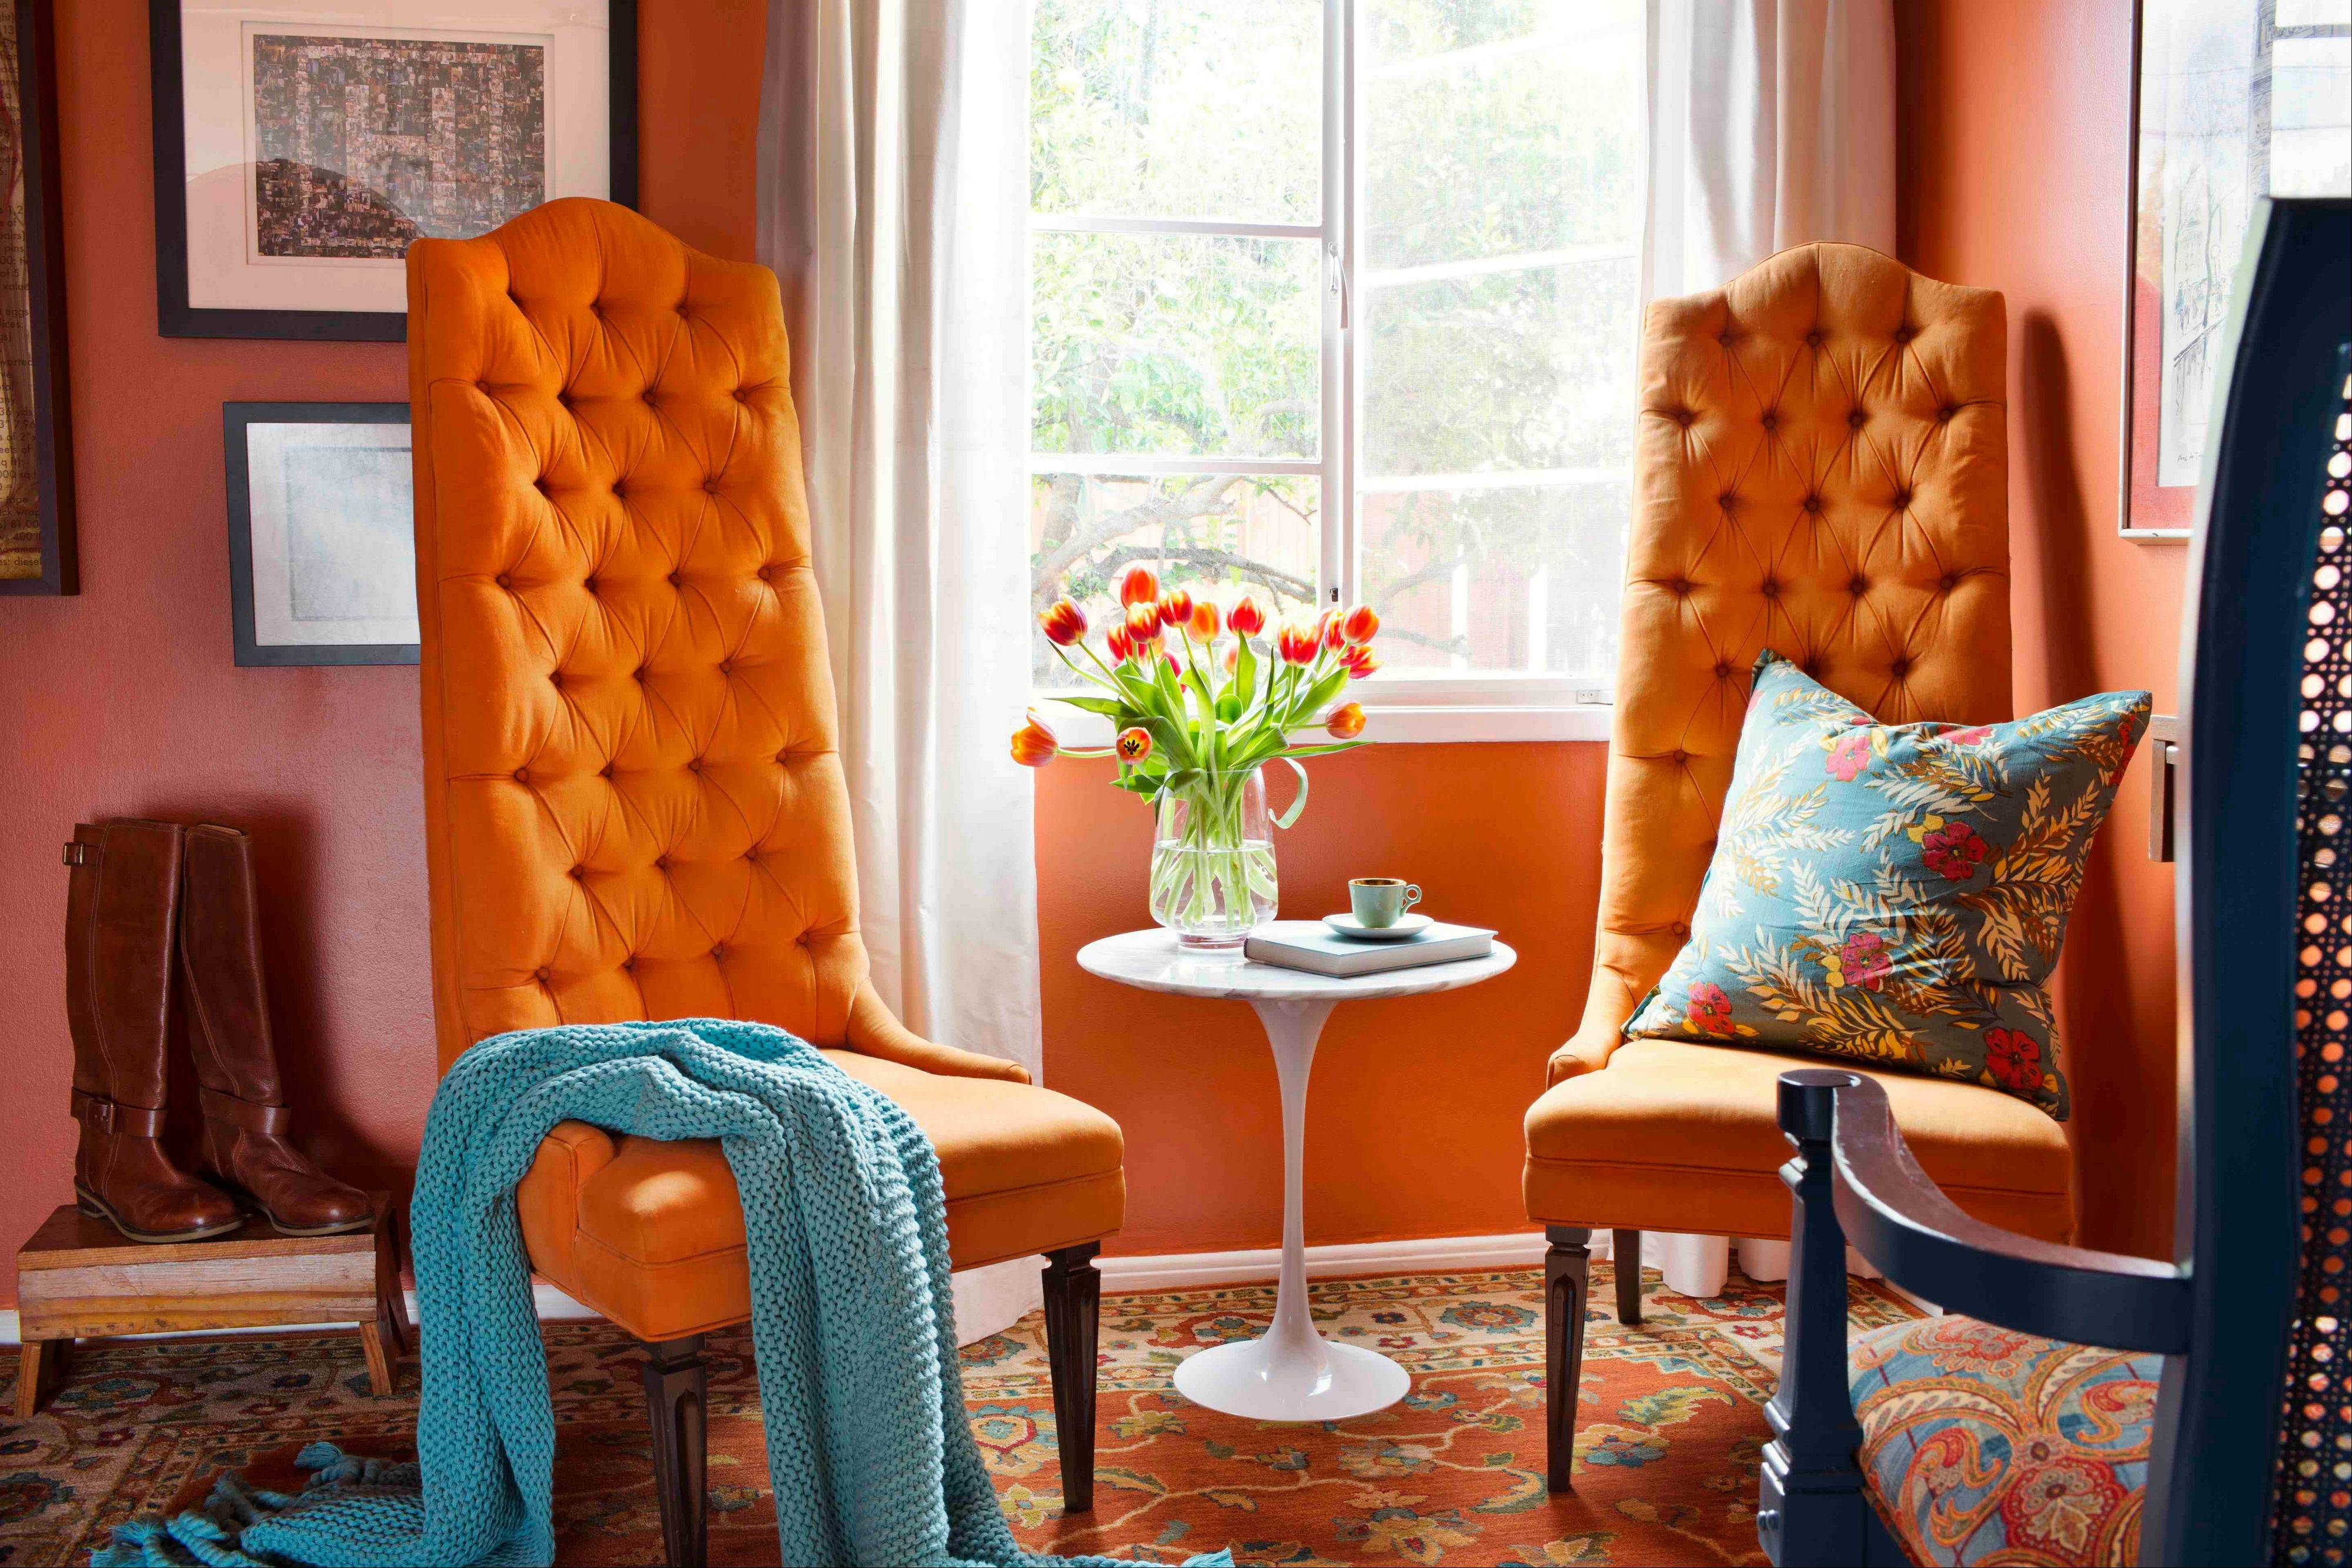 The lush orange trees of California serve as inspiration in a client's den for designer Brian Patrick Flynn, where he layered several shades of orange throughout the space to bring vacation memories home.